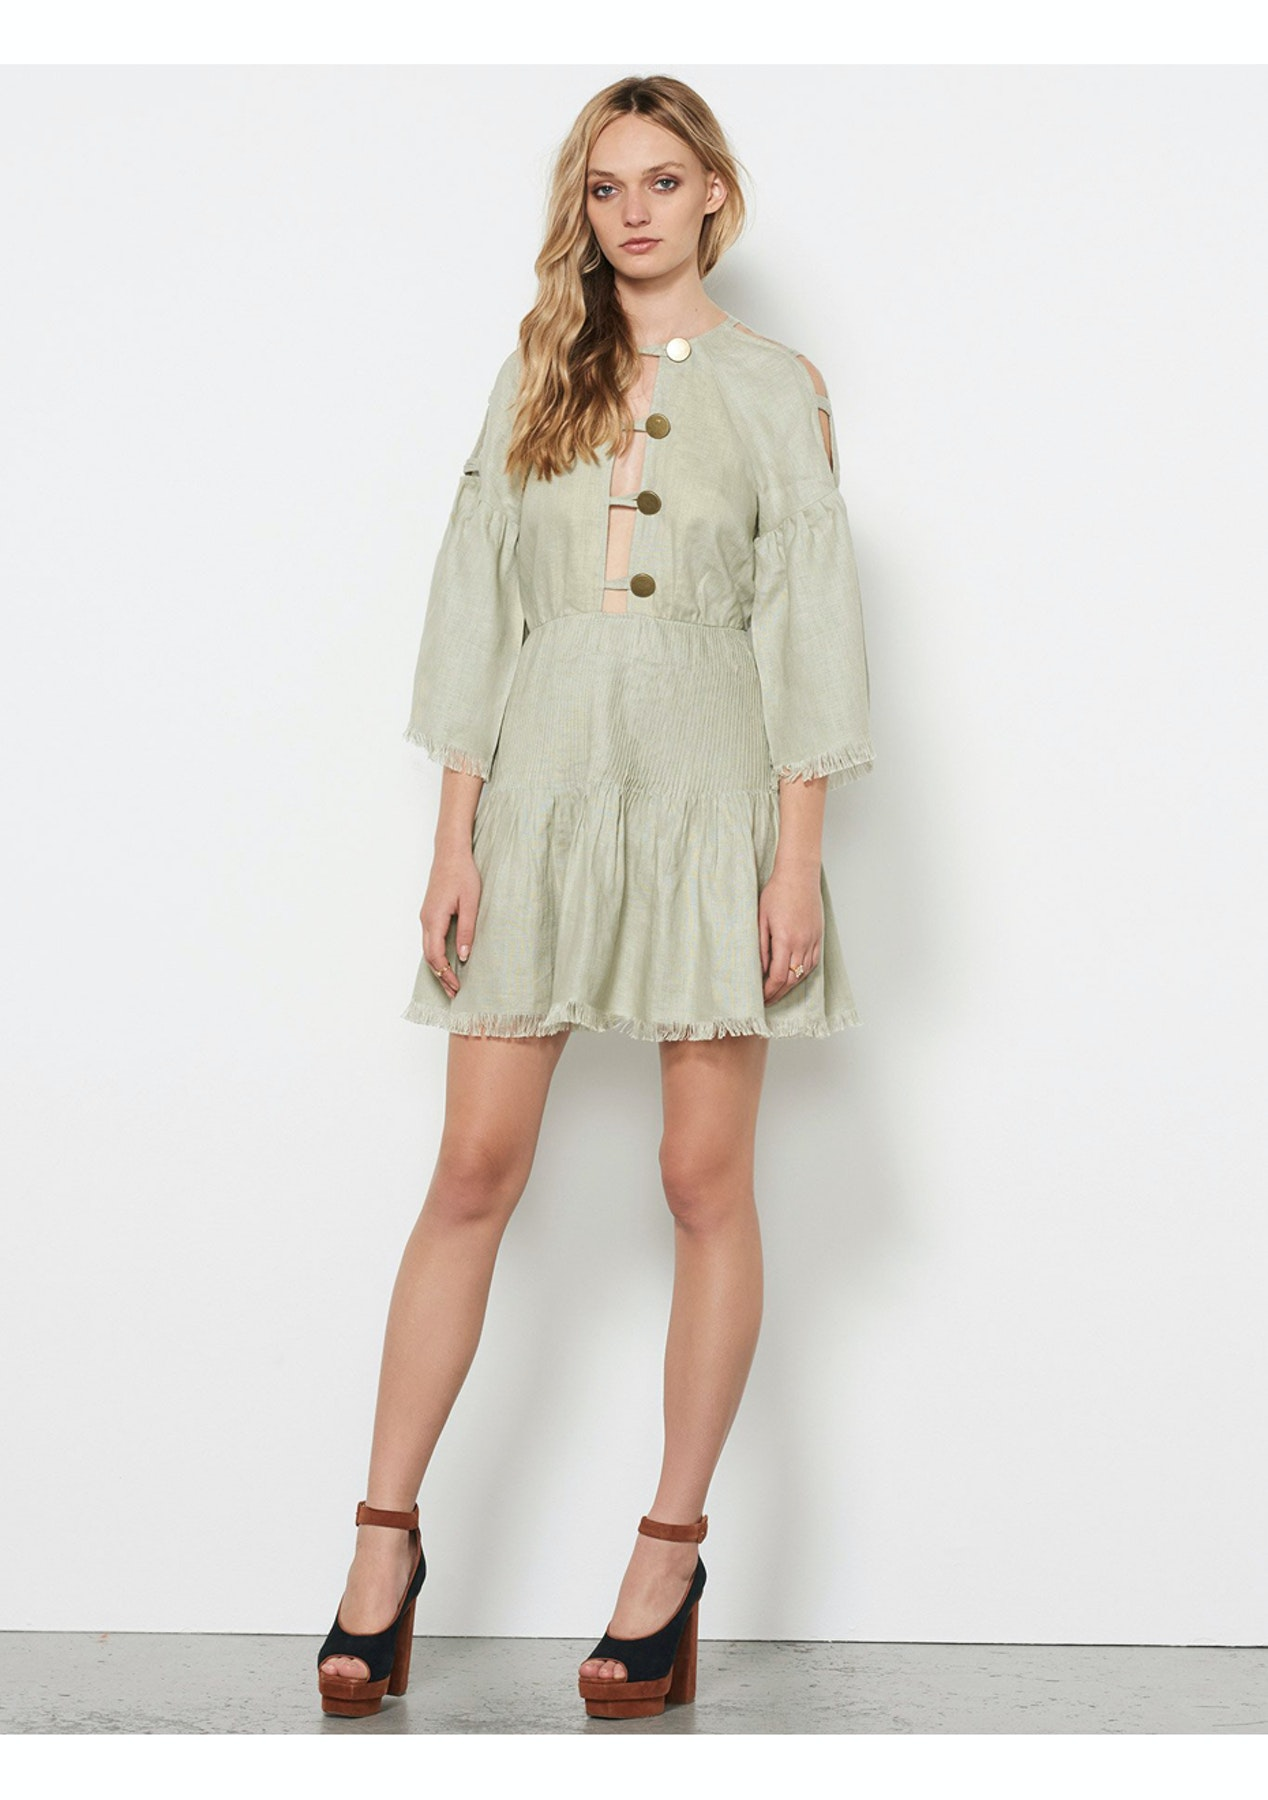 fcea690575 STEVIE MAY - Castello Linen Mini Dress - Sage - The East Order ...